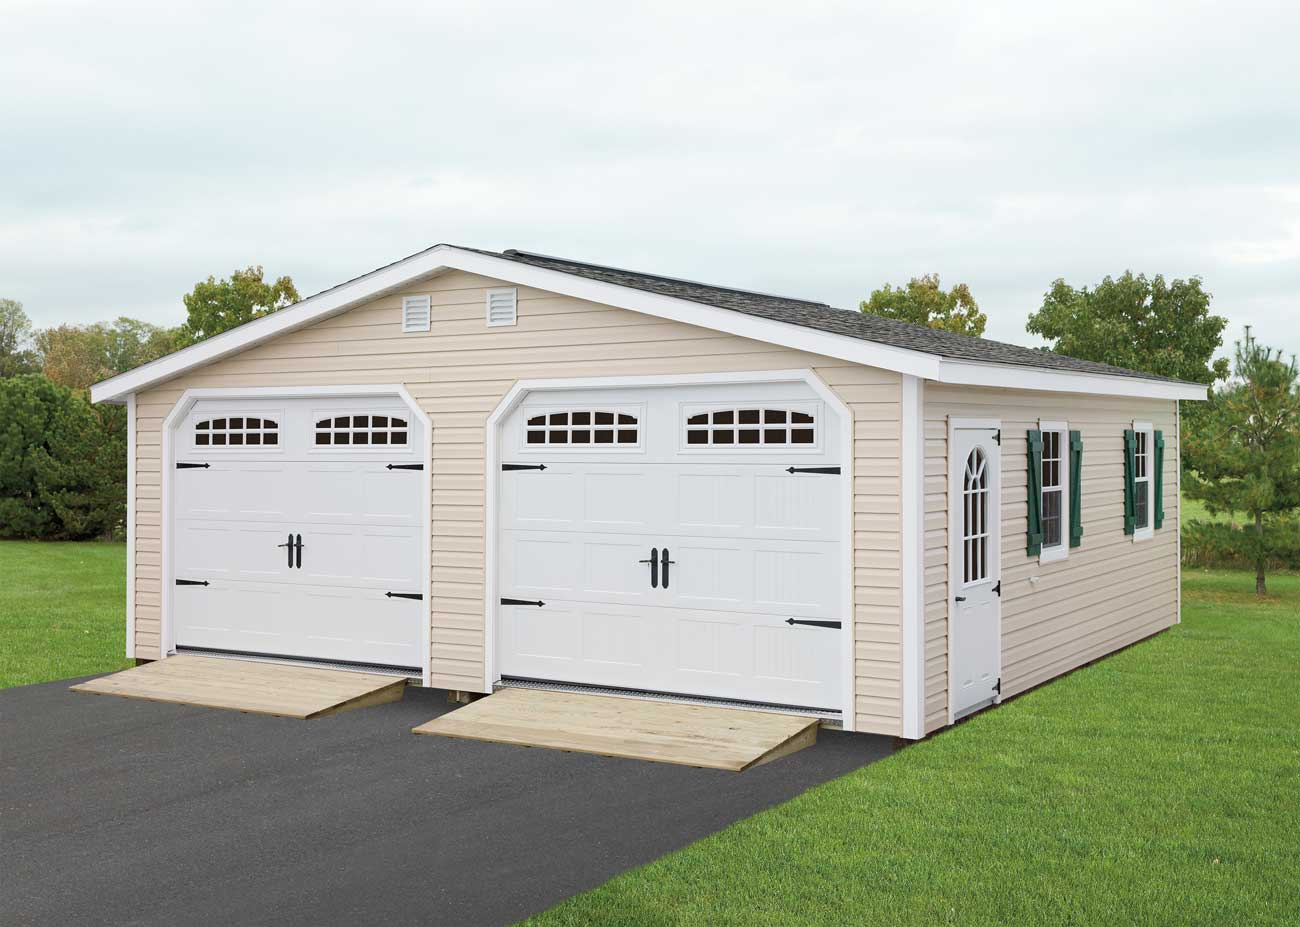 24 x24 double wide mansion garage amish sheds from bob for 24 by 24 garage